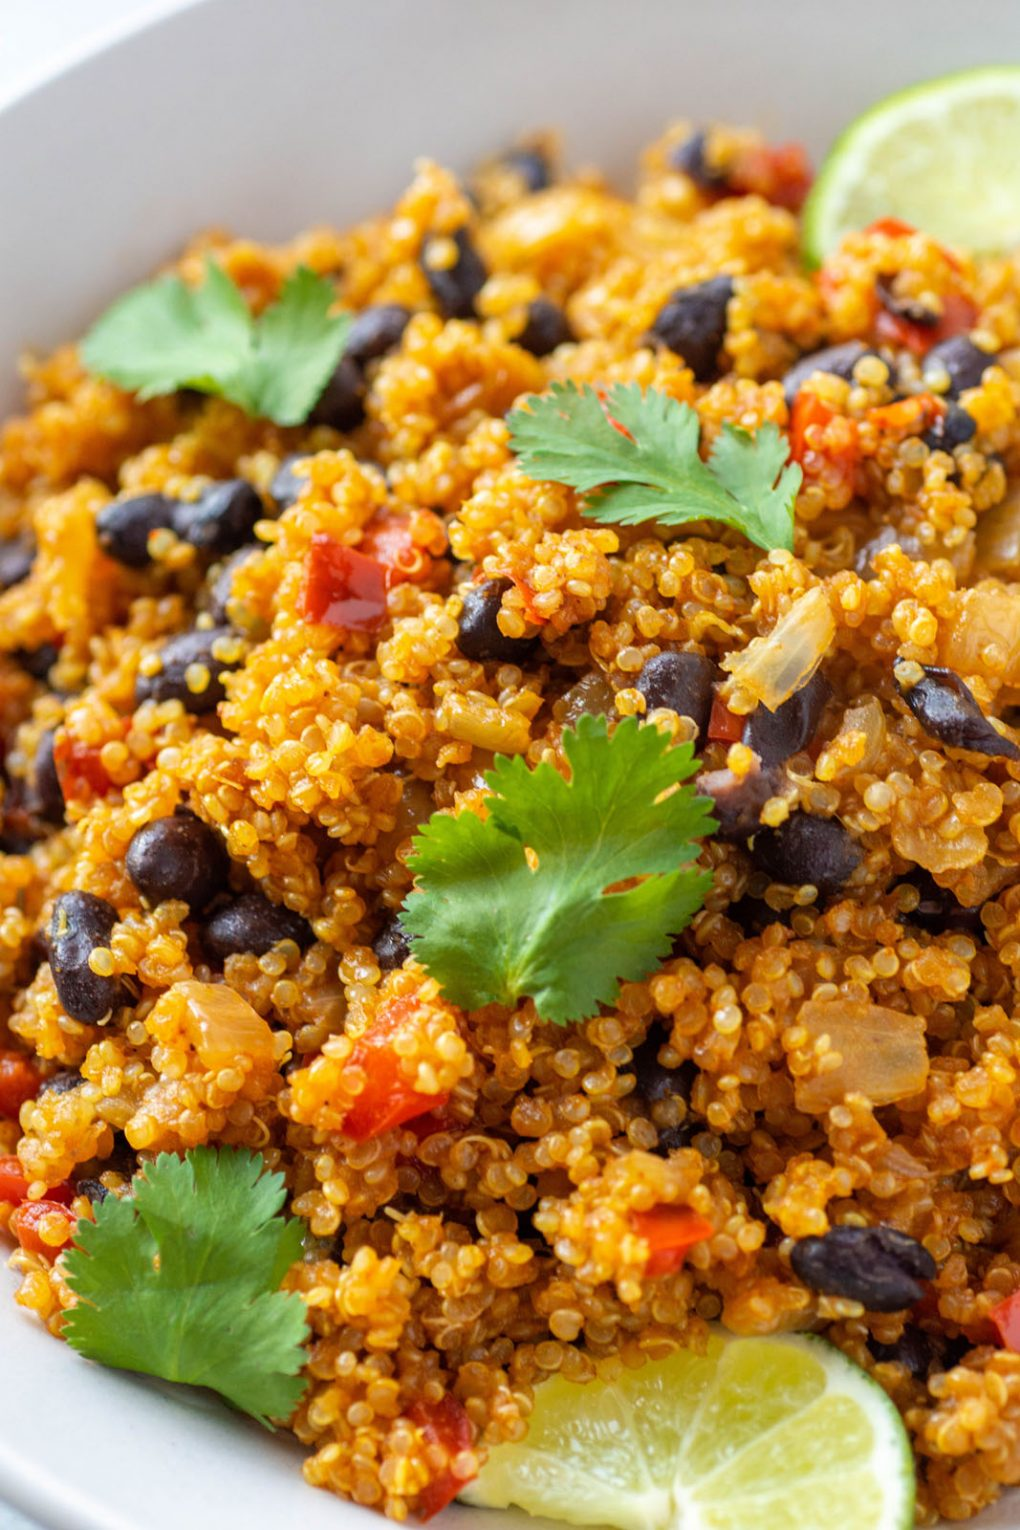 Super close up side angle shot of southwest quinoa with black beans, diced red pepper, fresh cilantro, and garnished with lime wedges. In a white bowl on a light colored background.